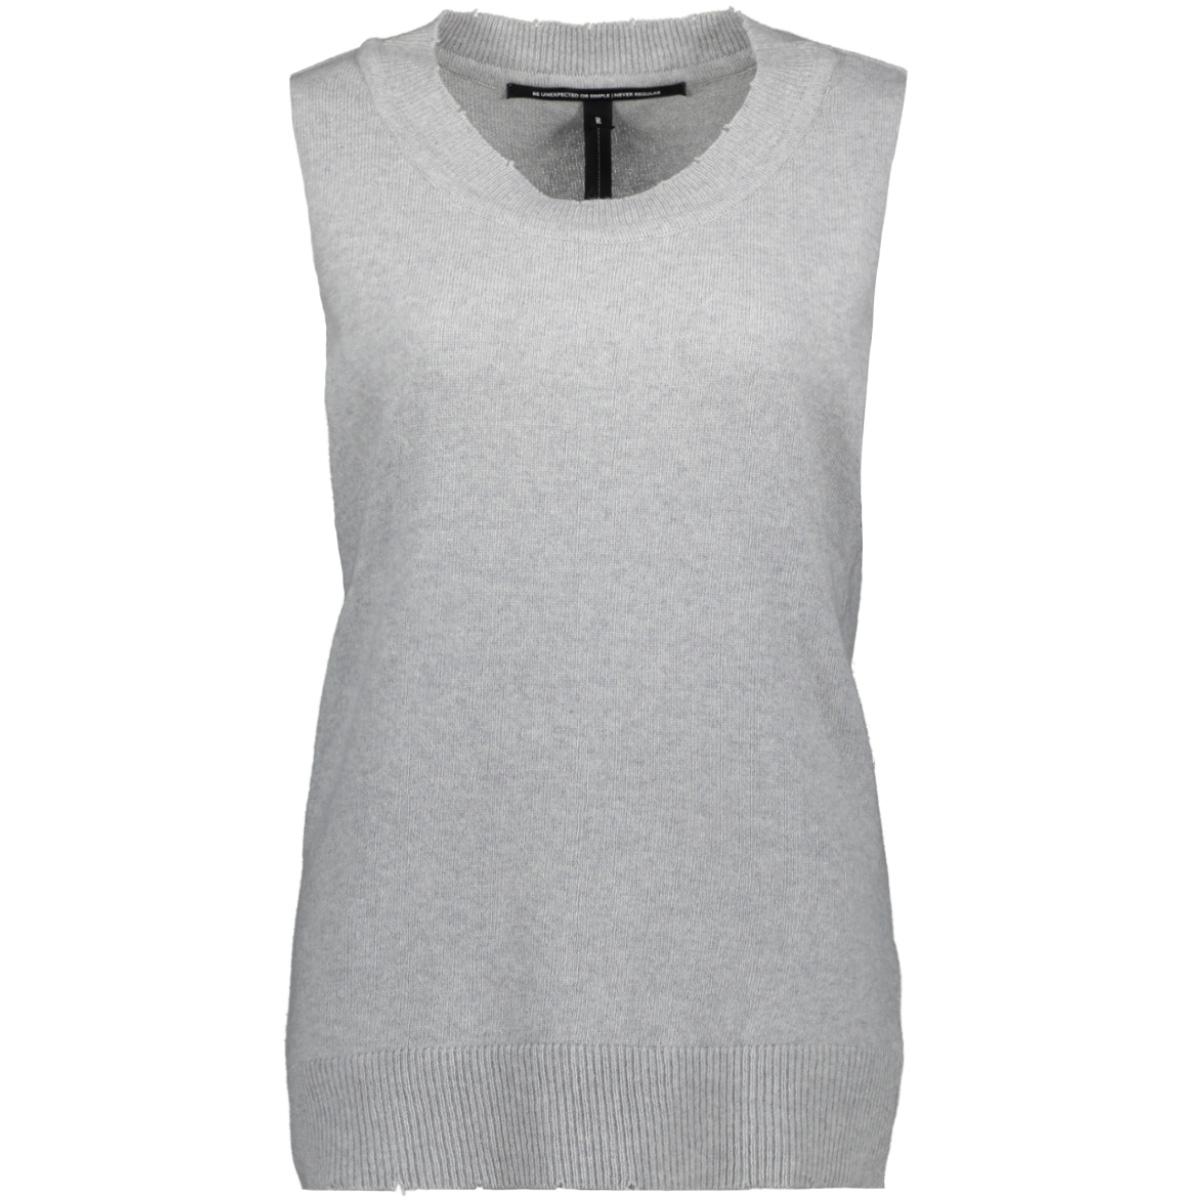 sleeveless sweater 20 617 8103 10 days top light grey melee